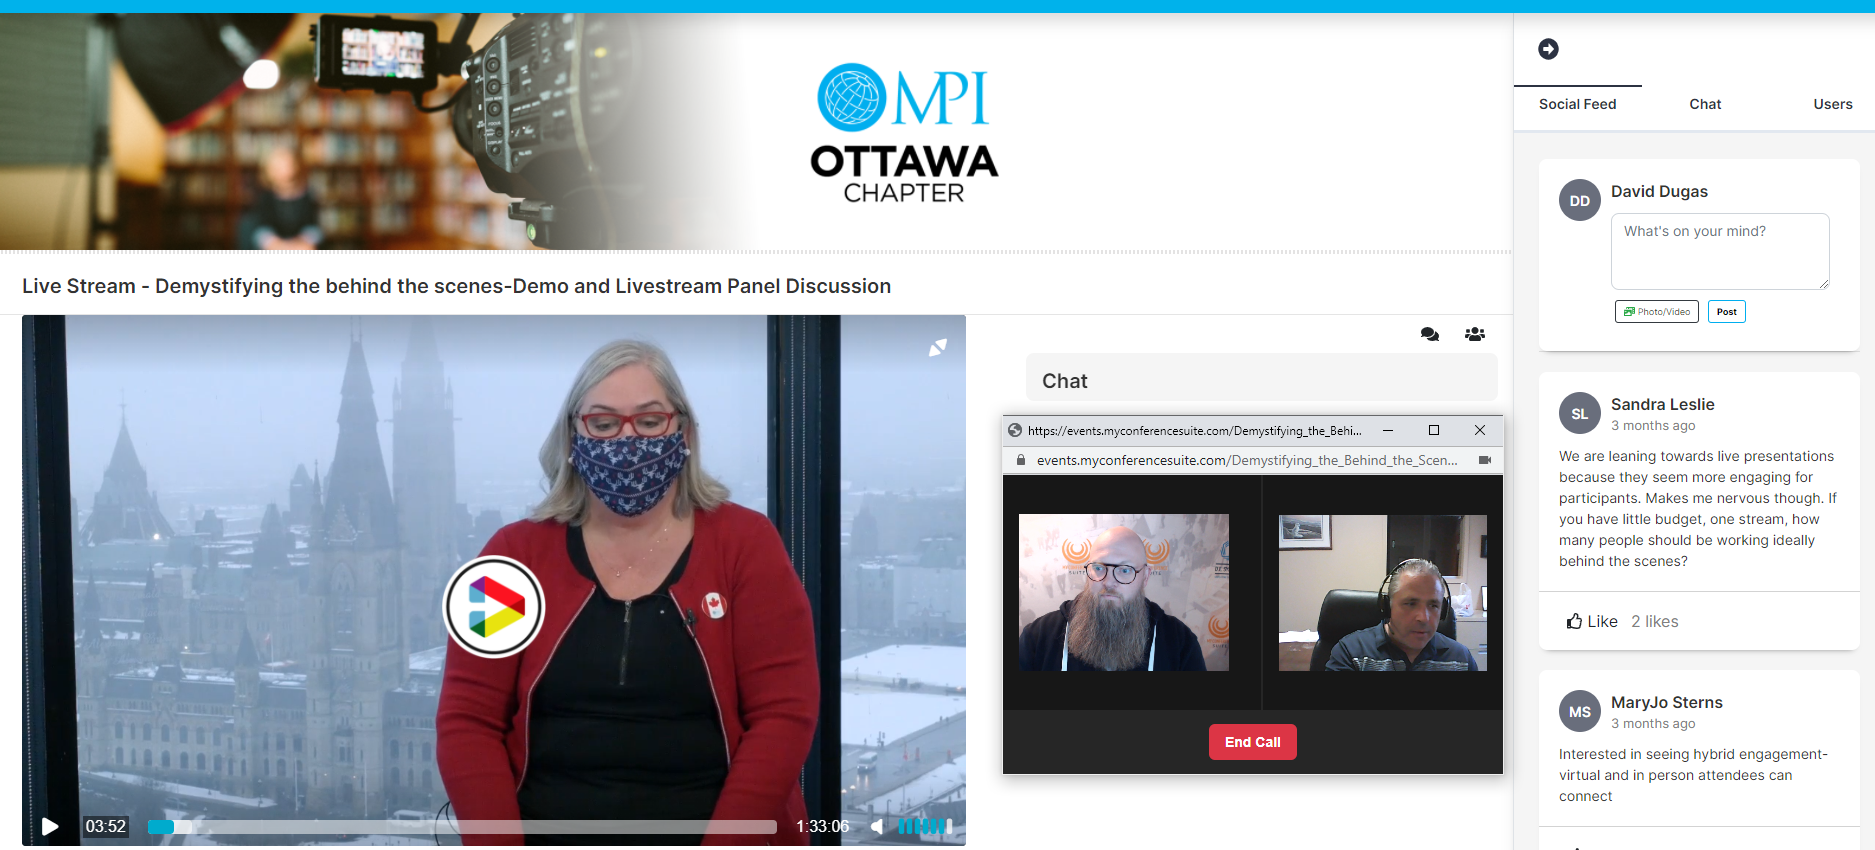 1-1 Video Chat and Private Chat Features added in myConferenceSuite's Virtual Portal